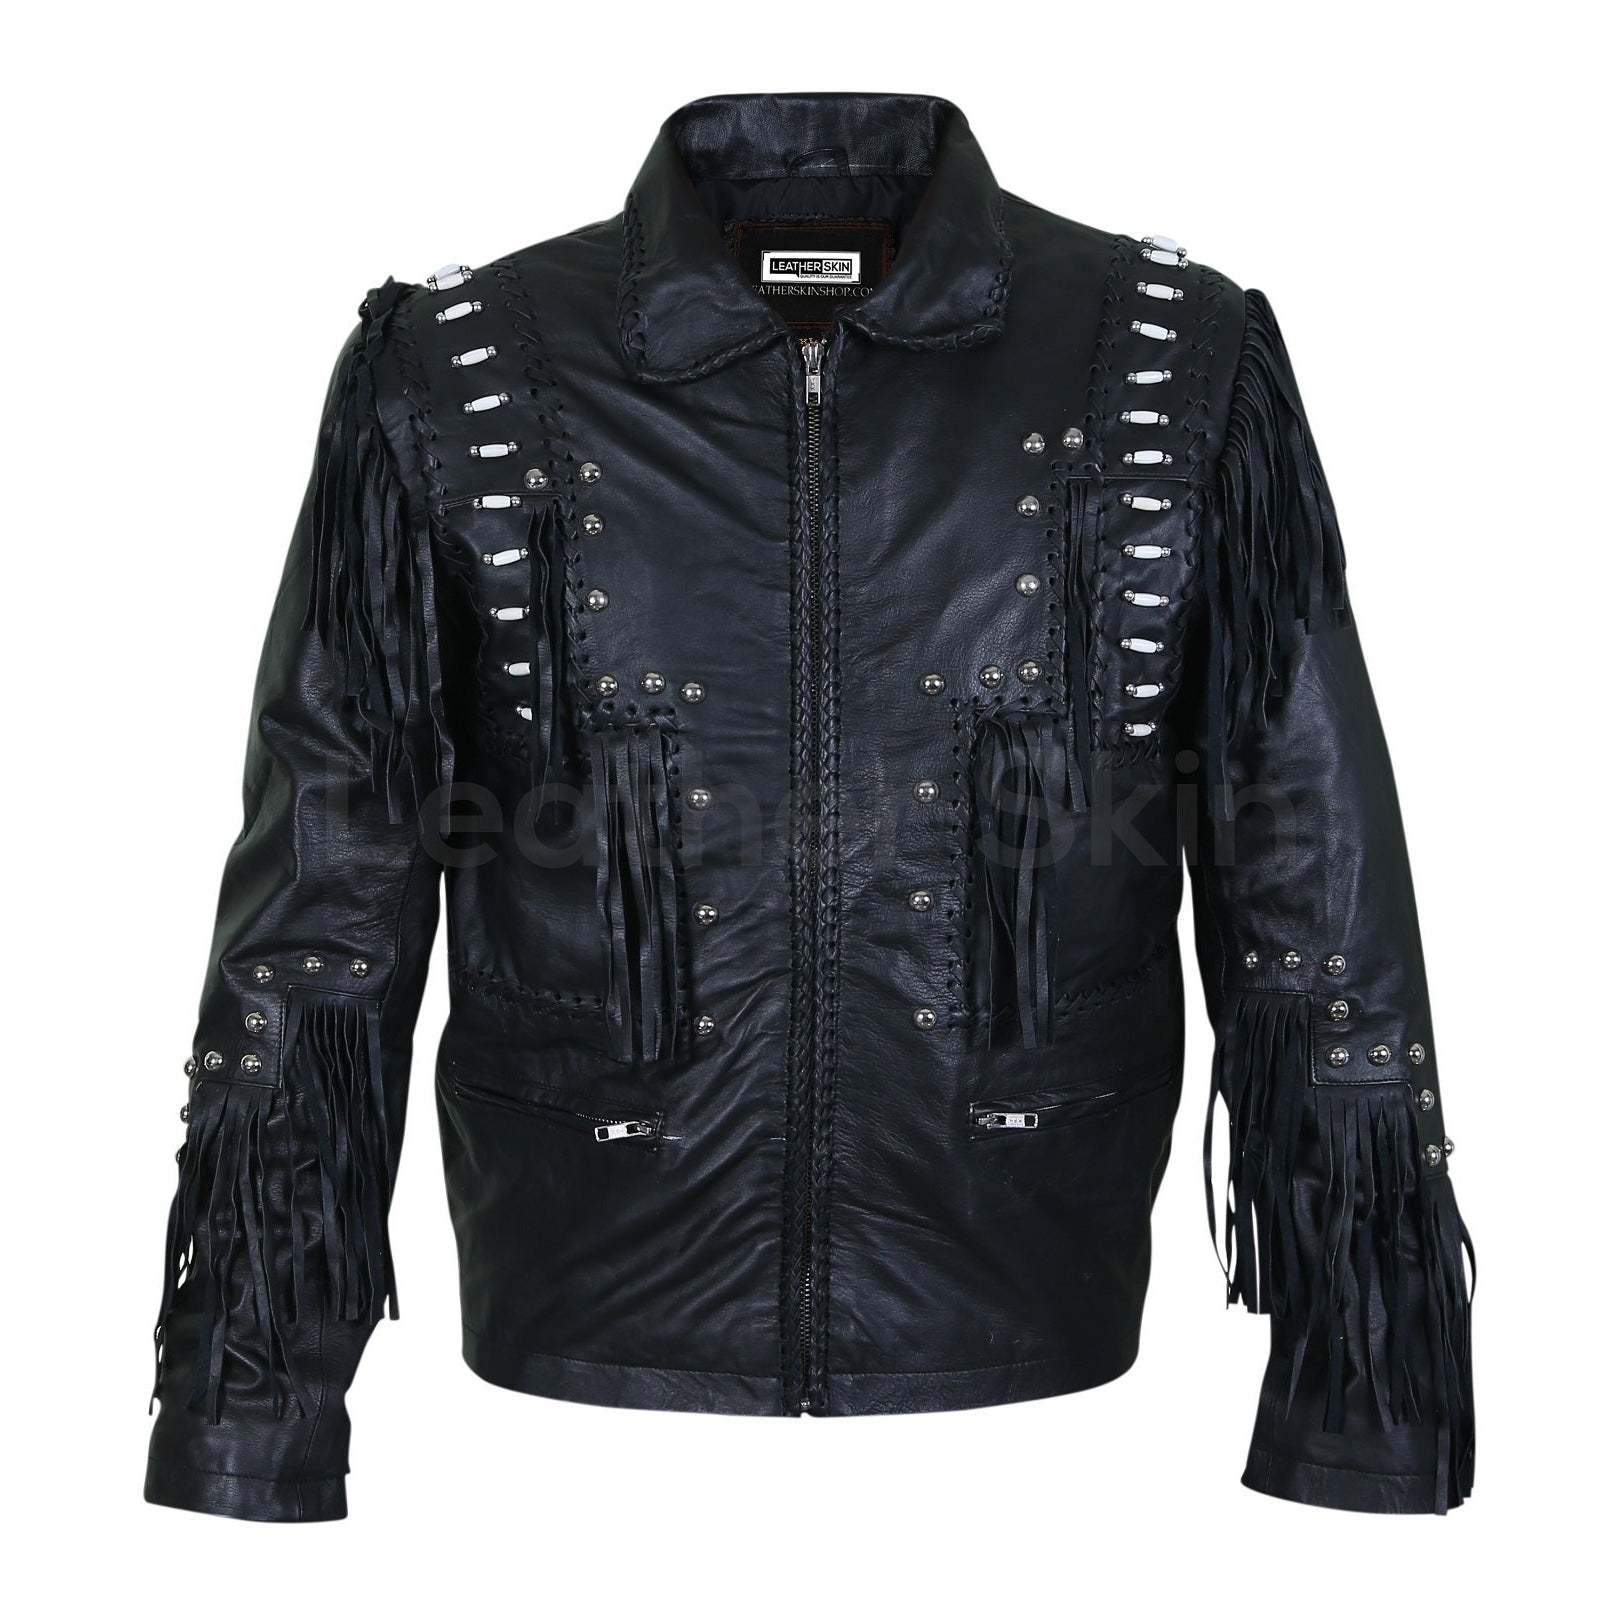 Men Black Fringes White Beads Leather Jacket with Round Studs